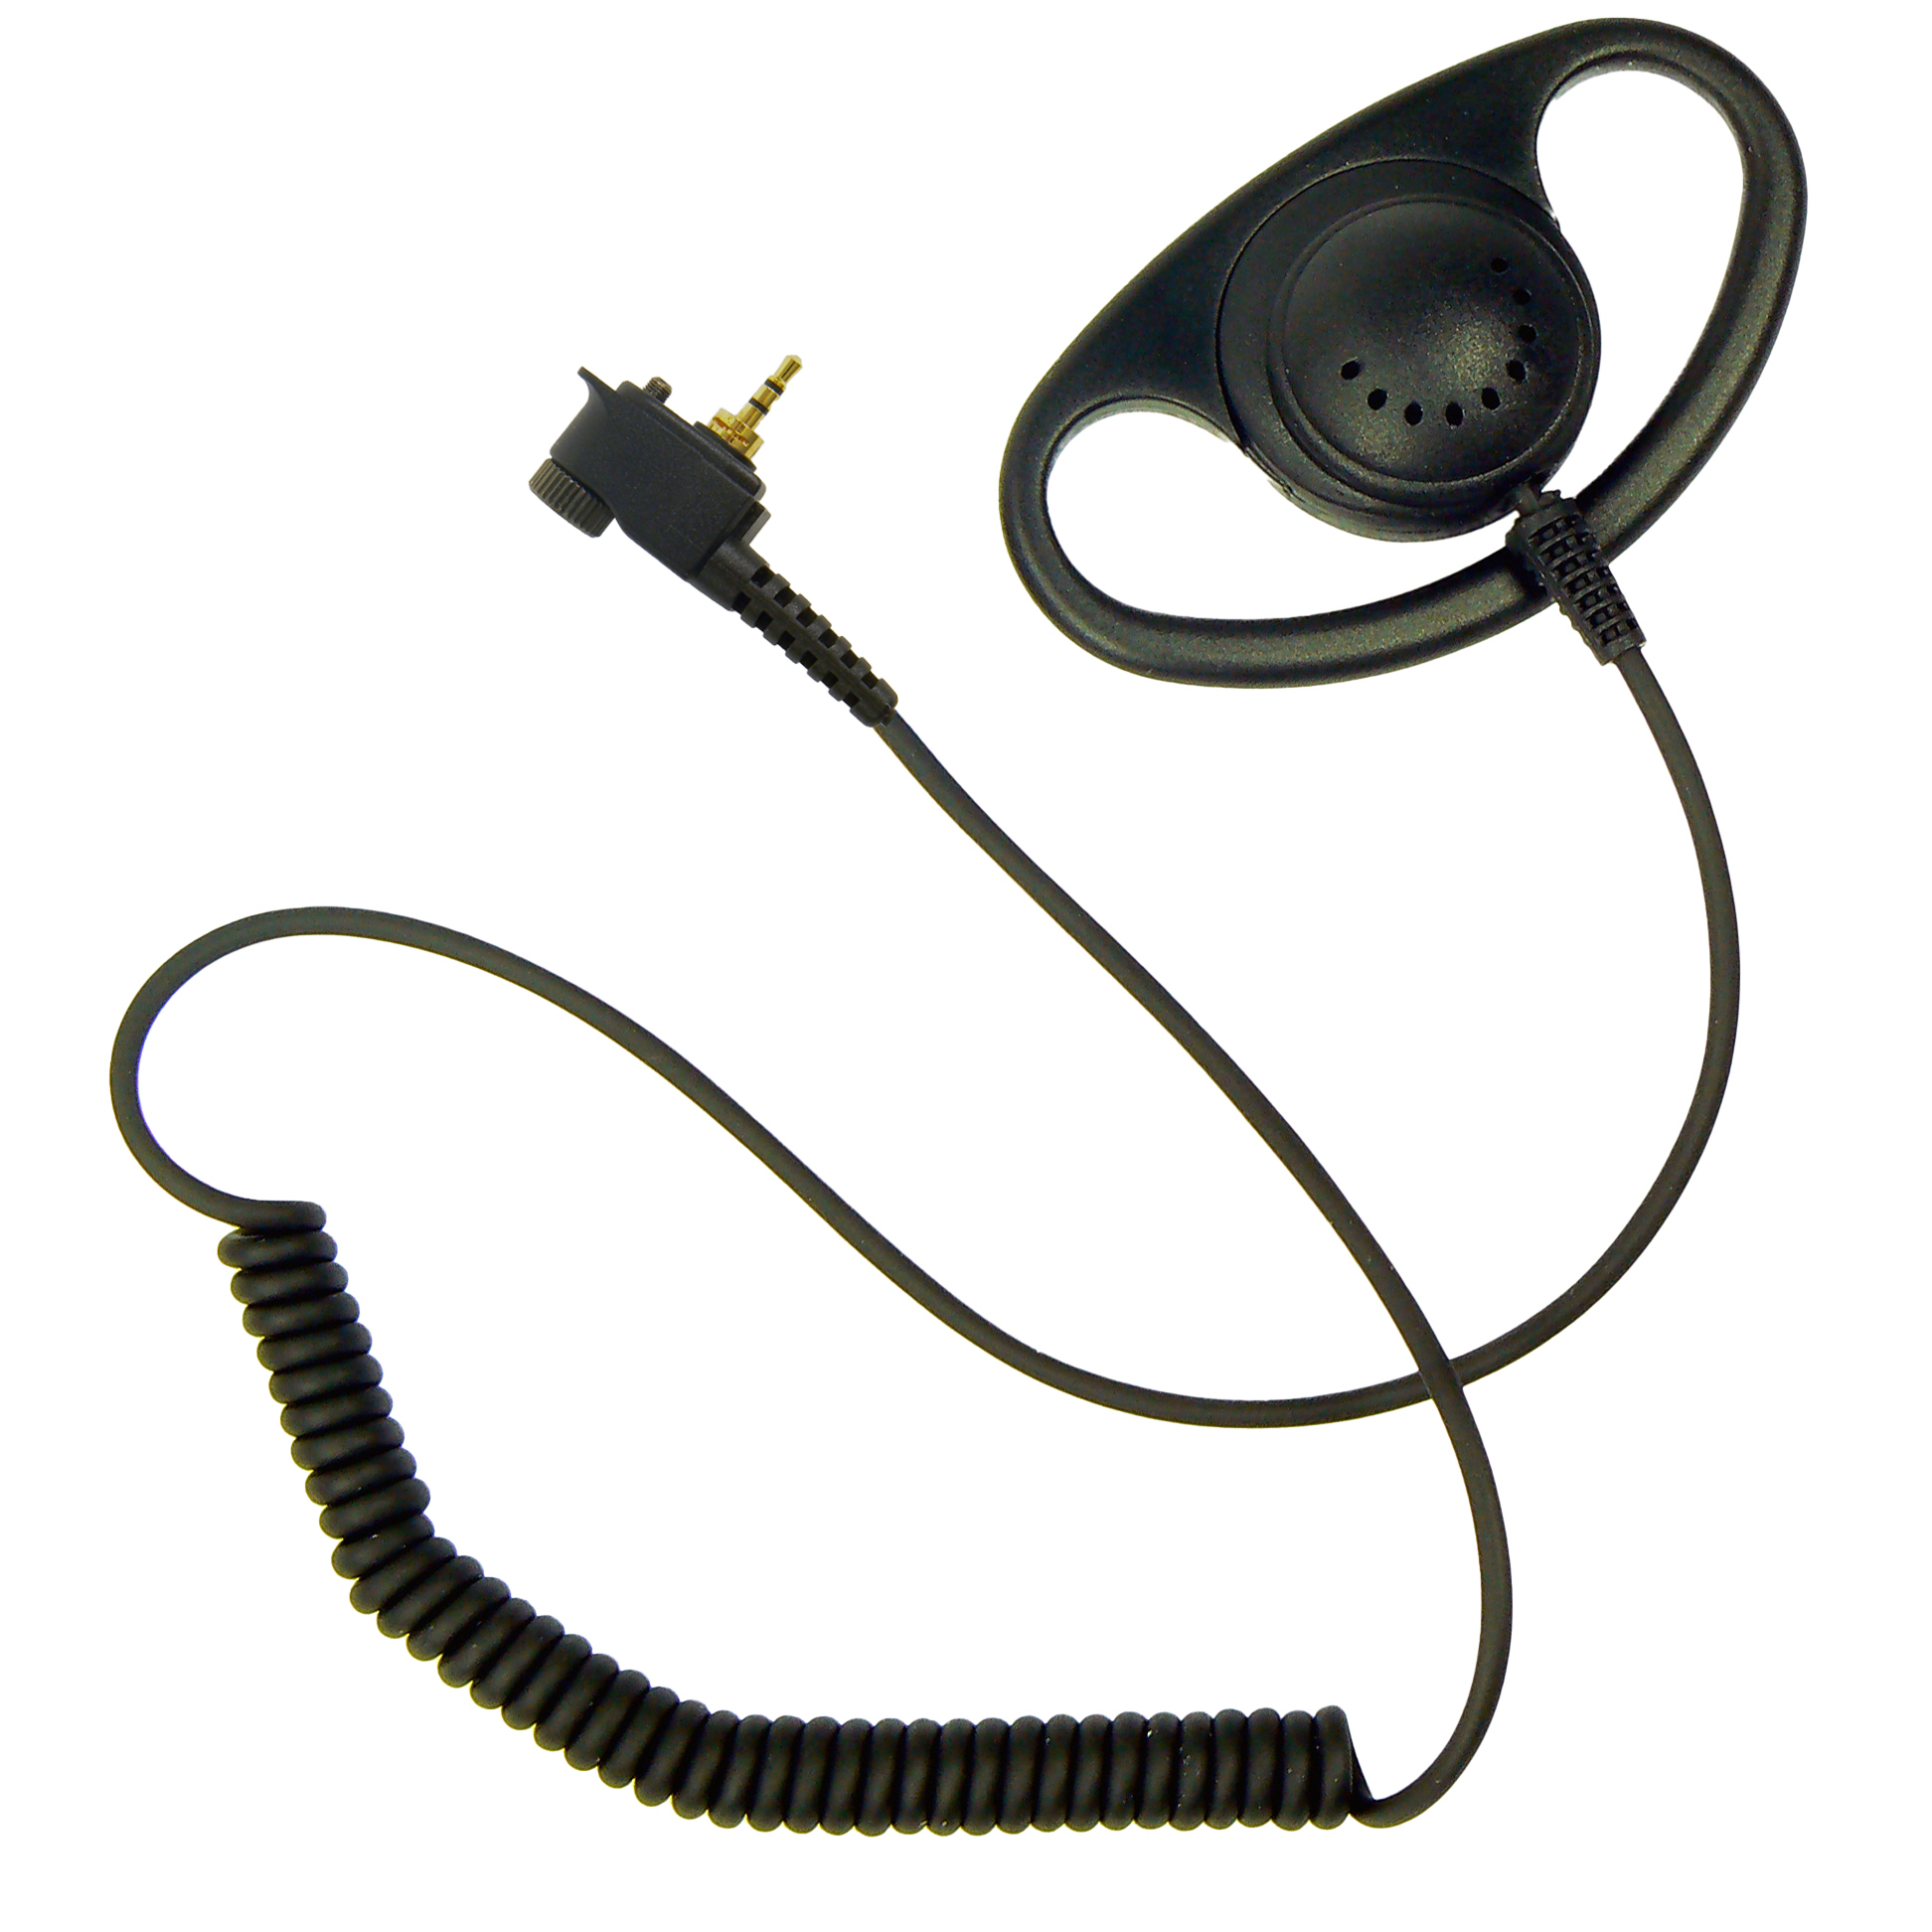 D-Shape earpiece for Tetra Motorola